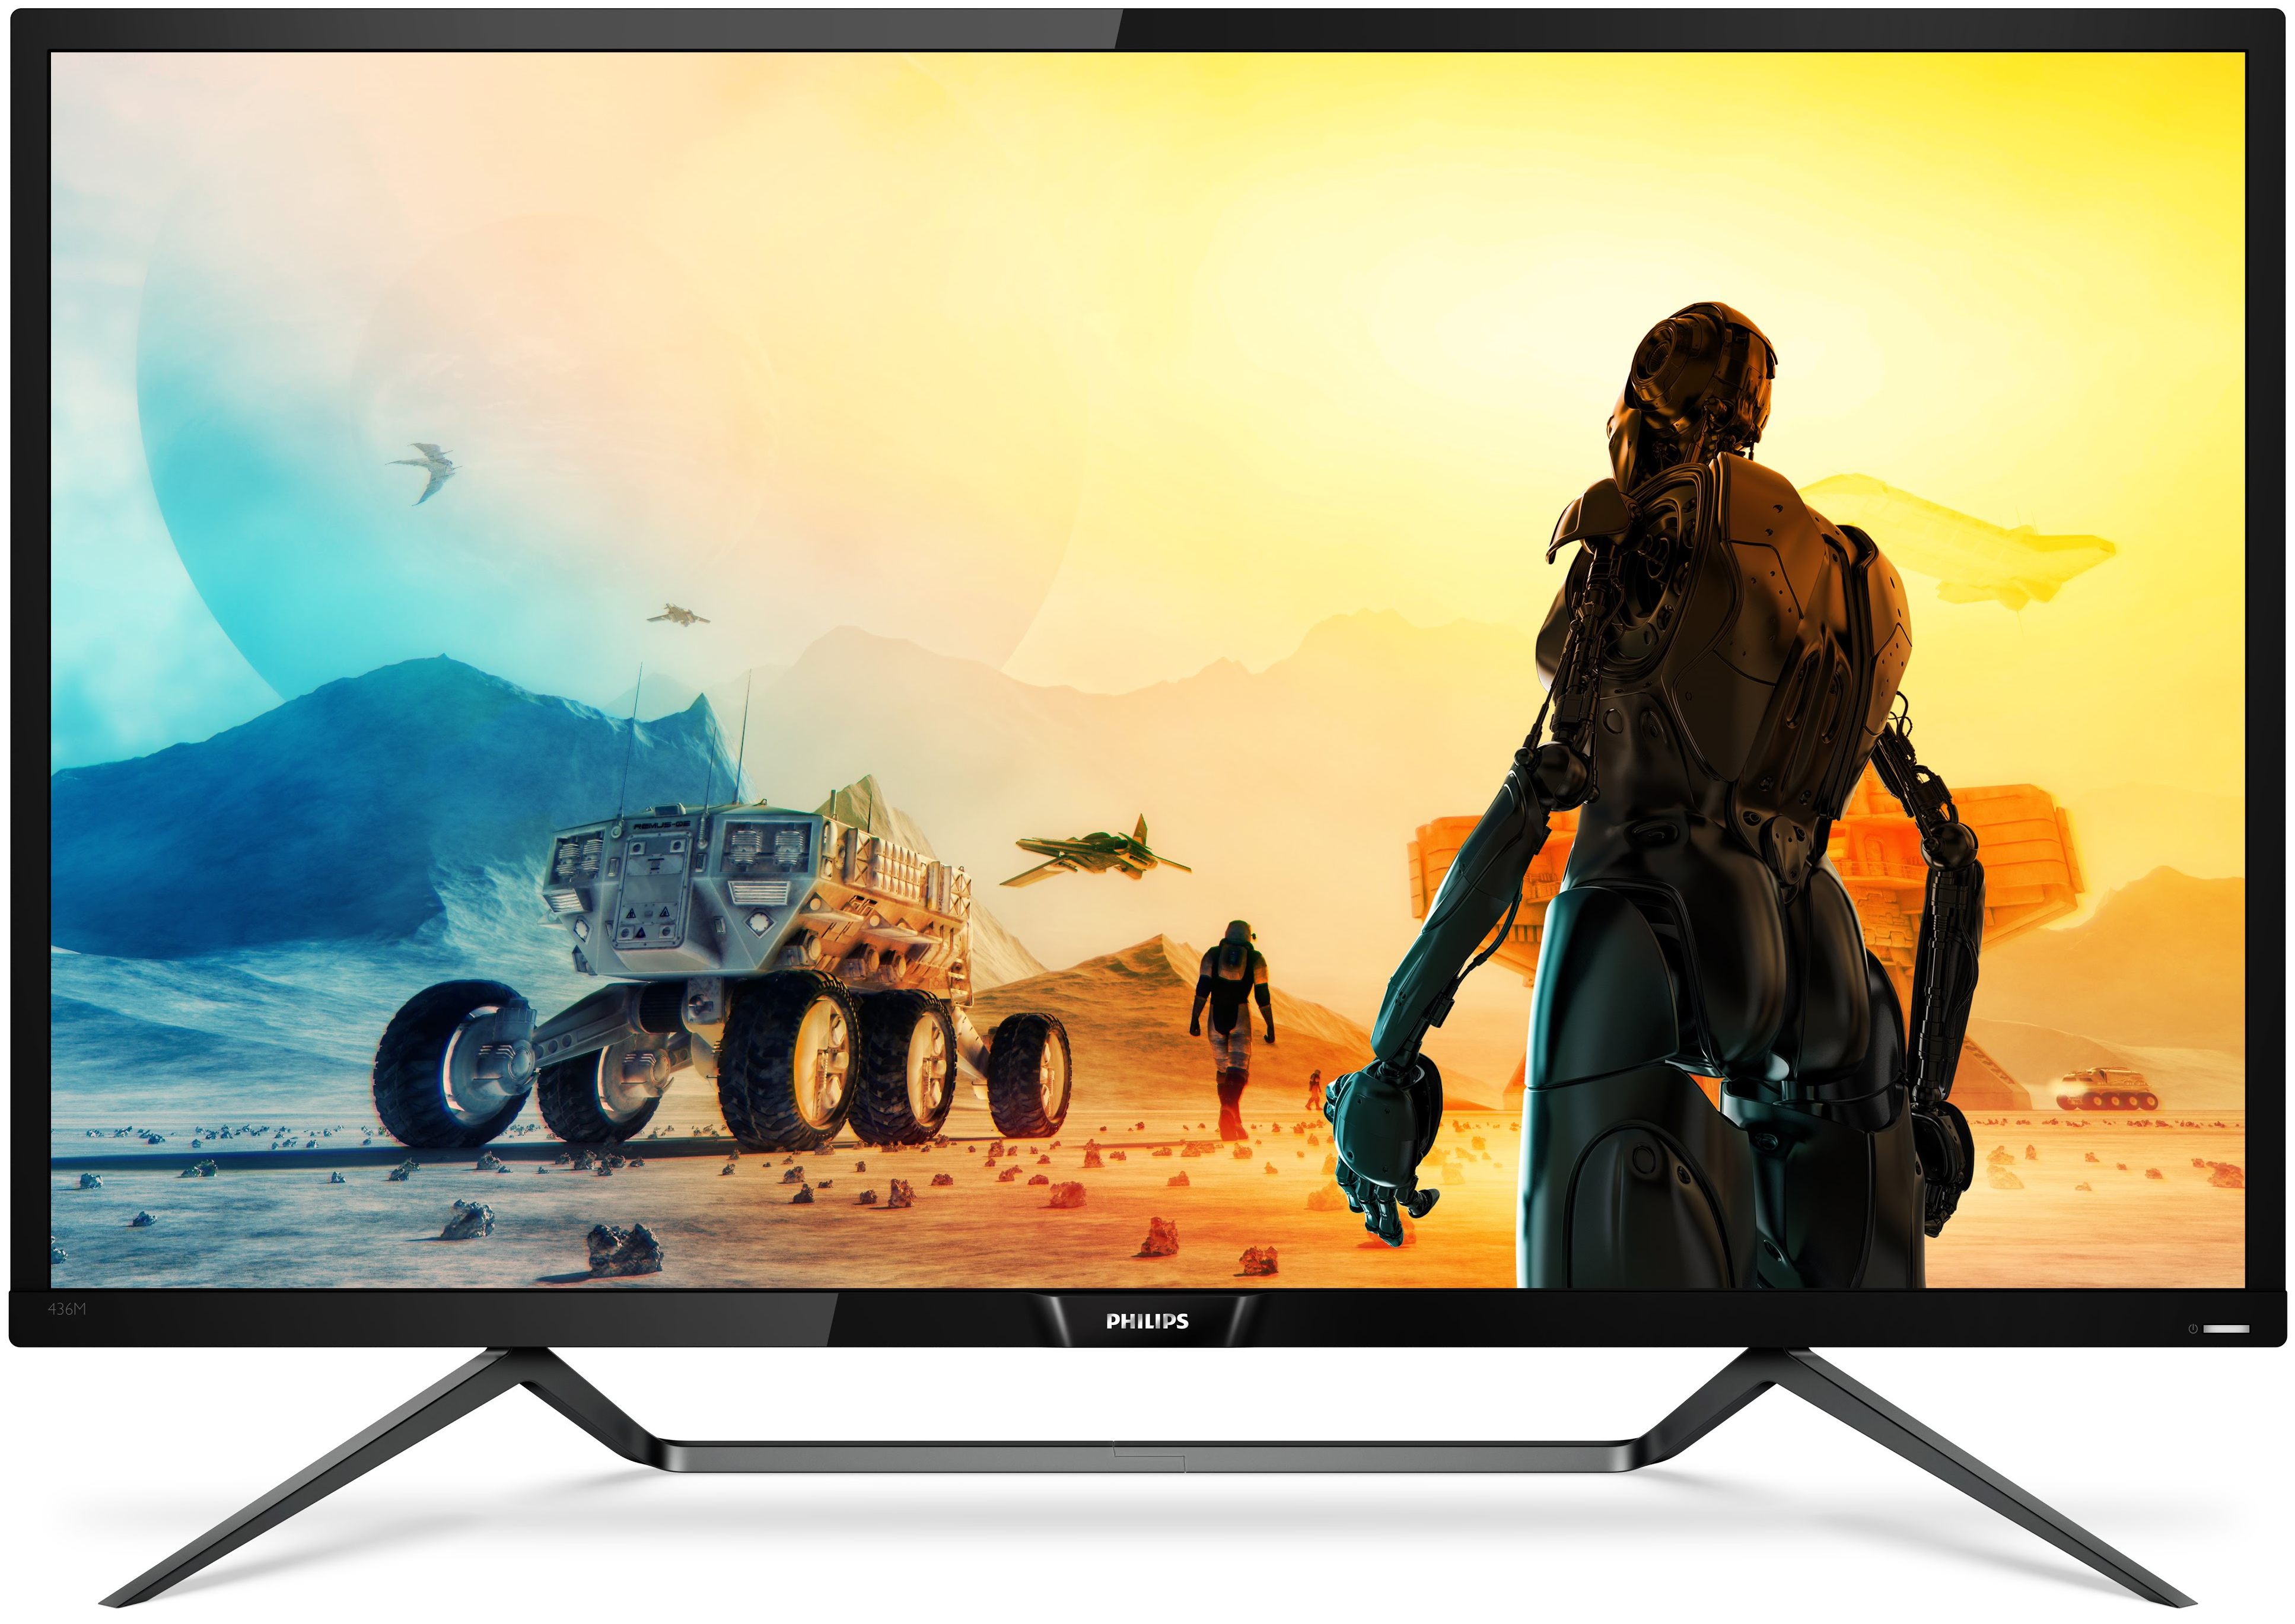 Philips Unveils 43-Inch 4K Gaming LCD with DisplayHDR 1000